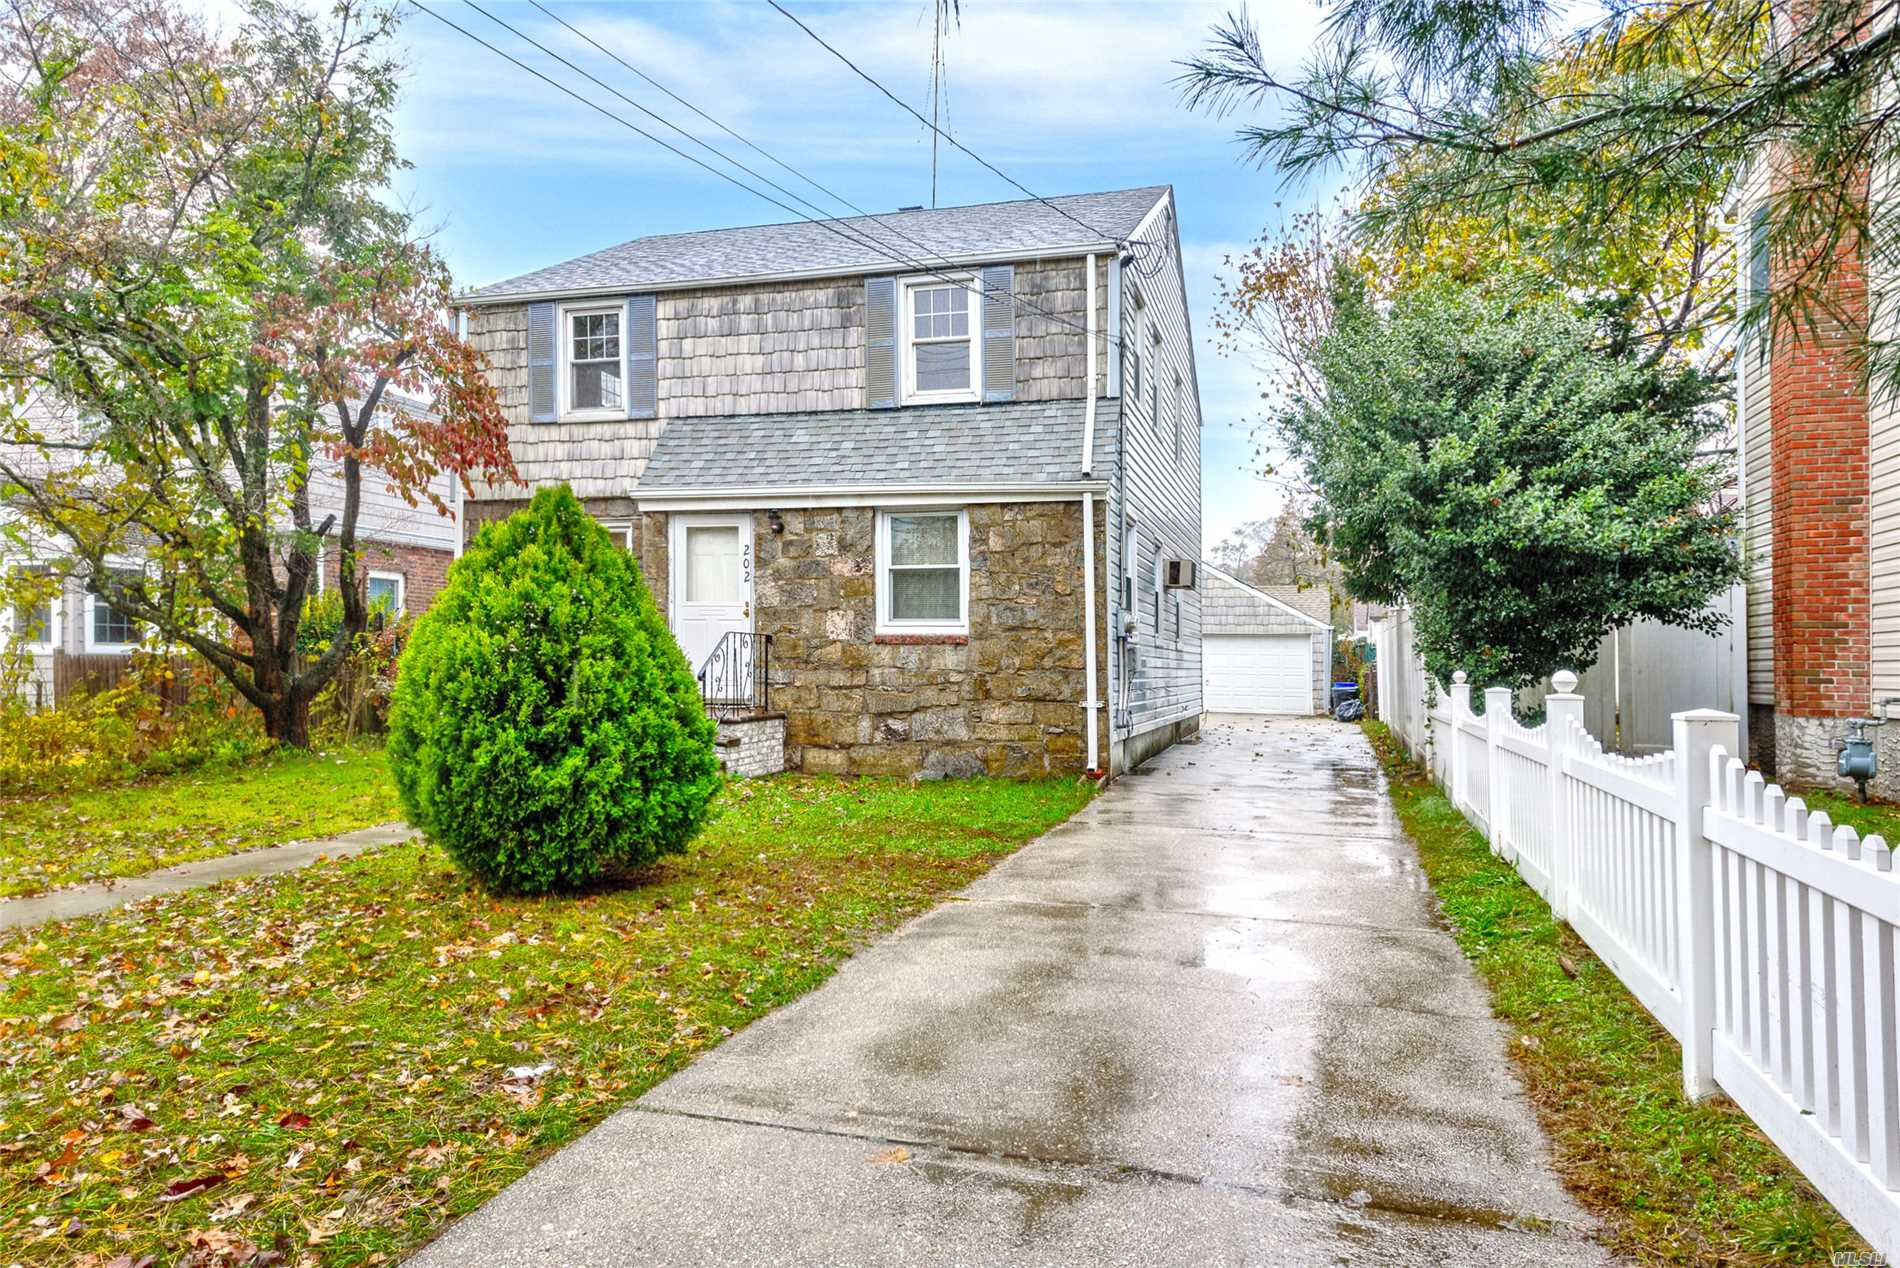 Mid-Block Westwood Legal-2 Family (W/Village), Features 2 Bdms/1Bath Over 2Bdms/1Bath & 2 Gas & Elec Meters. 1st Flr Features Lr, Lrge Eik W/Wall Oven, Stainless Fridge & D/W, Dining Area, Sunroom Off Kit, Hw Flrs Throughout & Replaced Windows 1st Flr & Bsmnt. 2nd Flr Freshly Painted, Living Rm & Bdrms W/Hw Flrs, Apt Kit Stove & Fridge Removed But Gas Stove Hookup Remains. Unfin Bsmnt W/Tons Of Storage, W/D, Ag Oil Tank & Ose. Arch. Roof, Vinyl Siding, 2-Car Det Garage & Long Driveway.